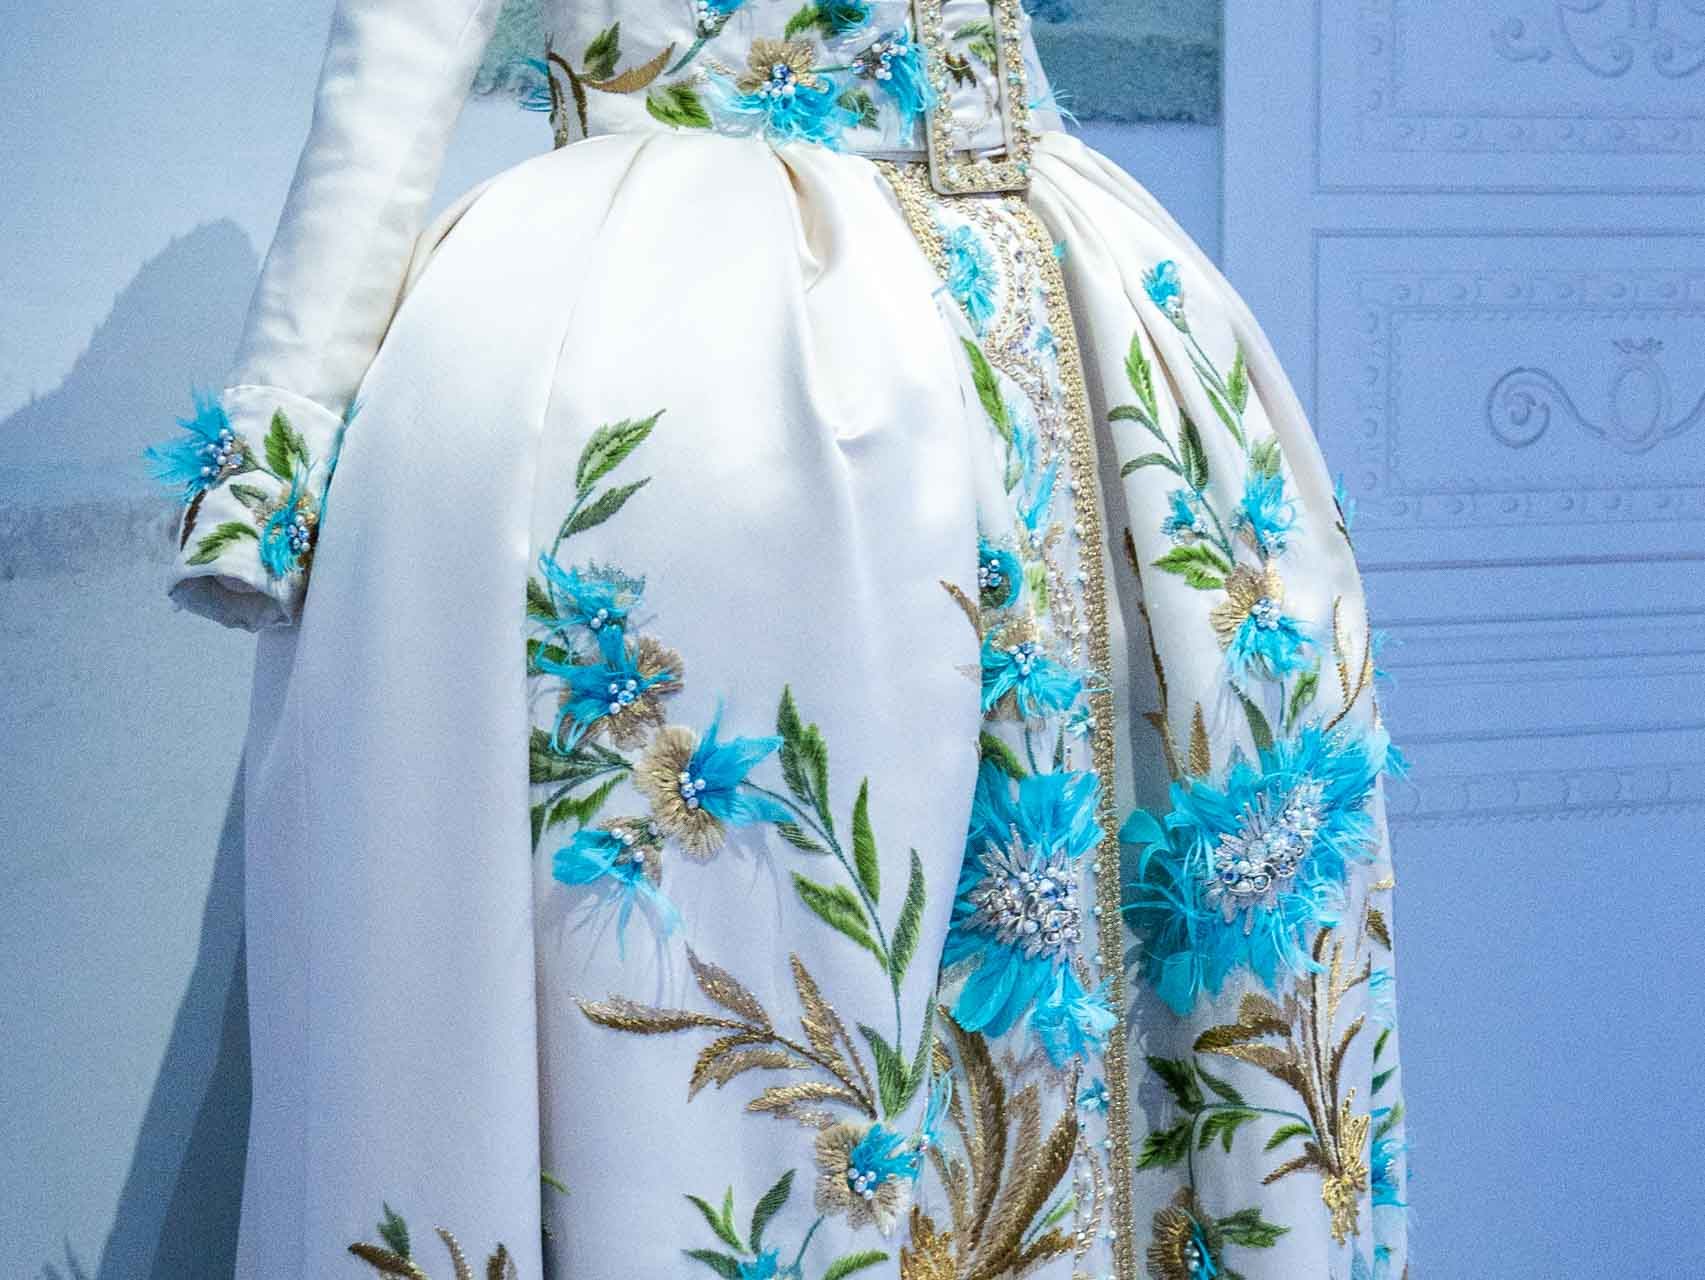 White and blue coat-dress. Christian Dior by John Galliano, Haute Couture, Spring-Summer 2005. Taken at the V&A exhibition © The Cutting Class, 2019. Image 2.